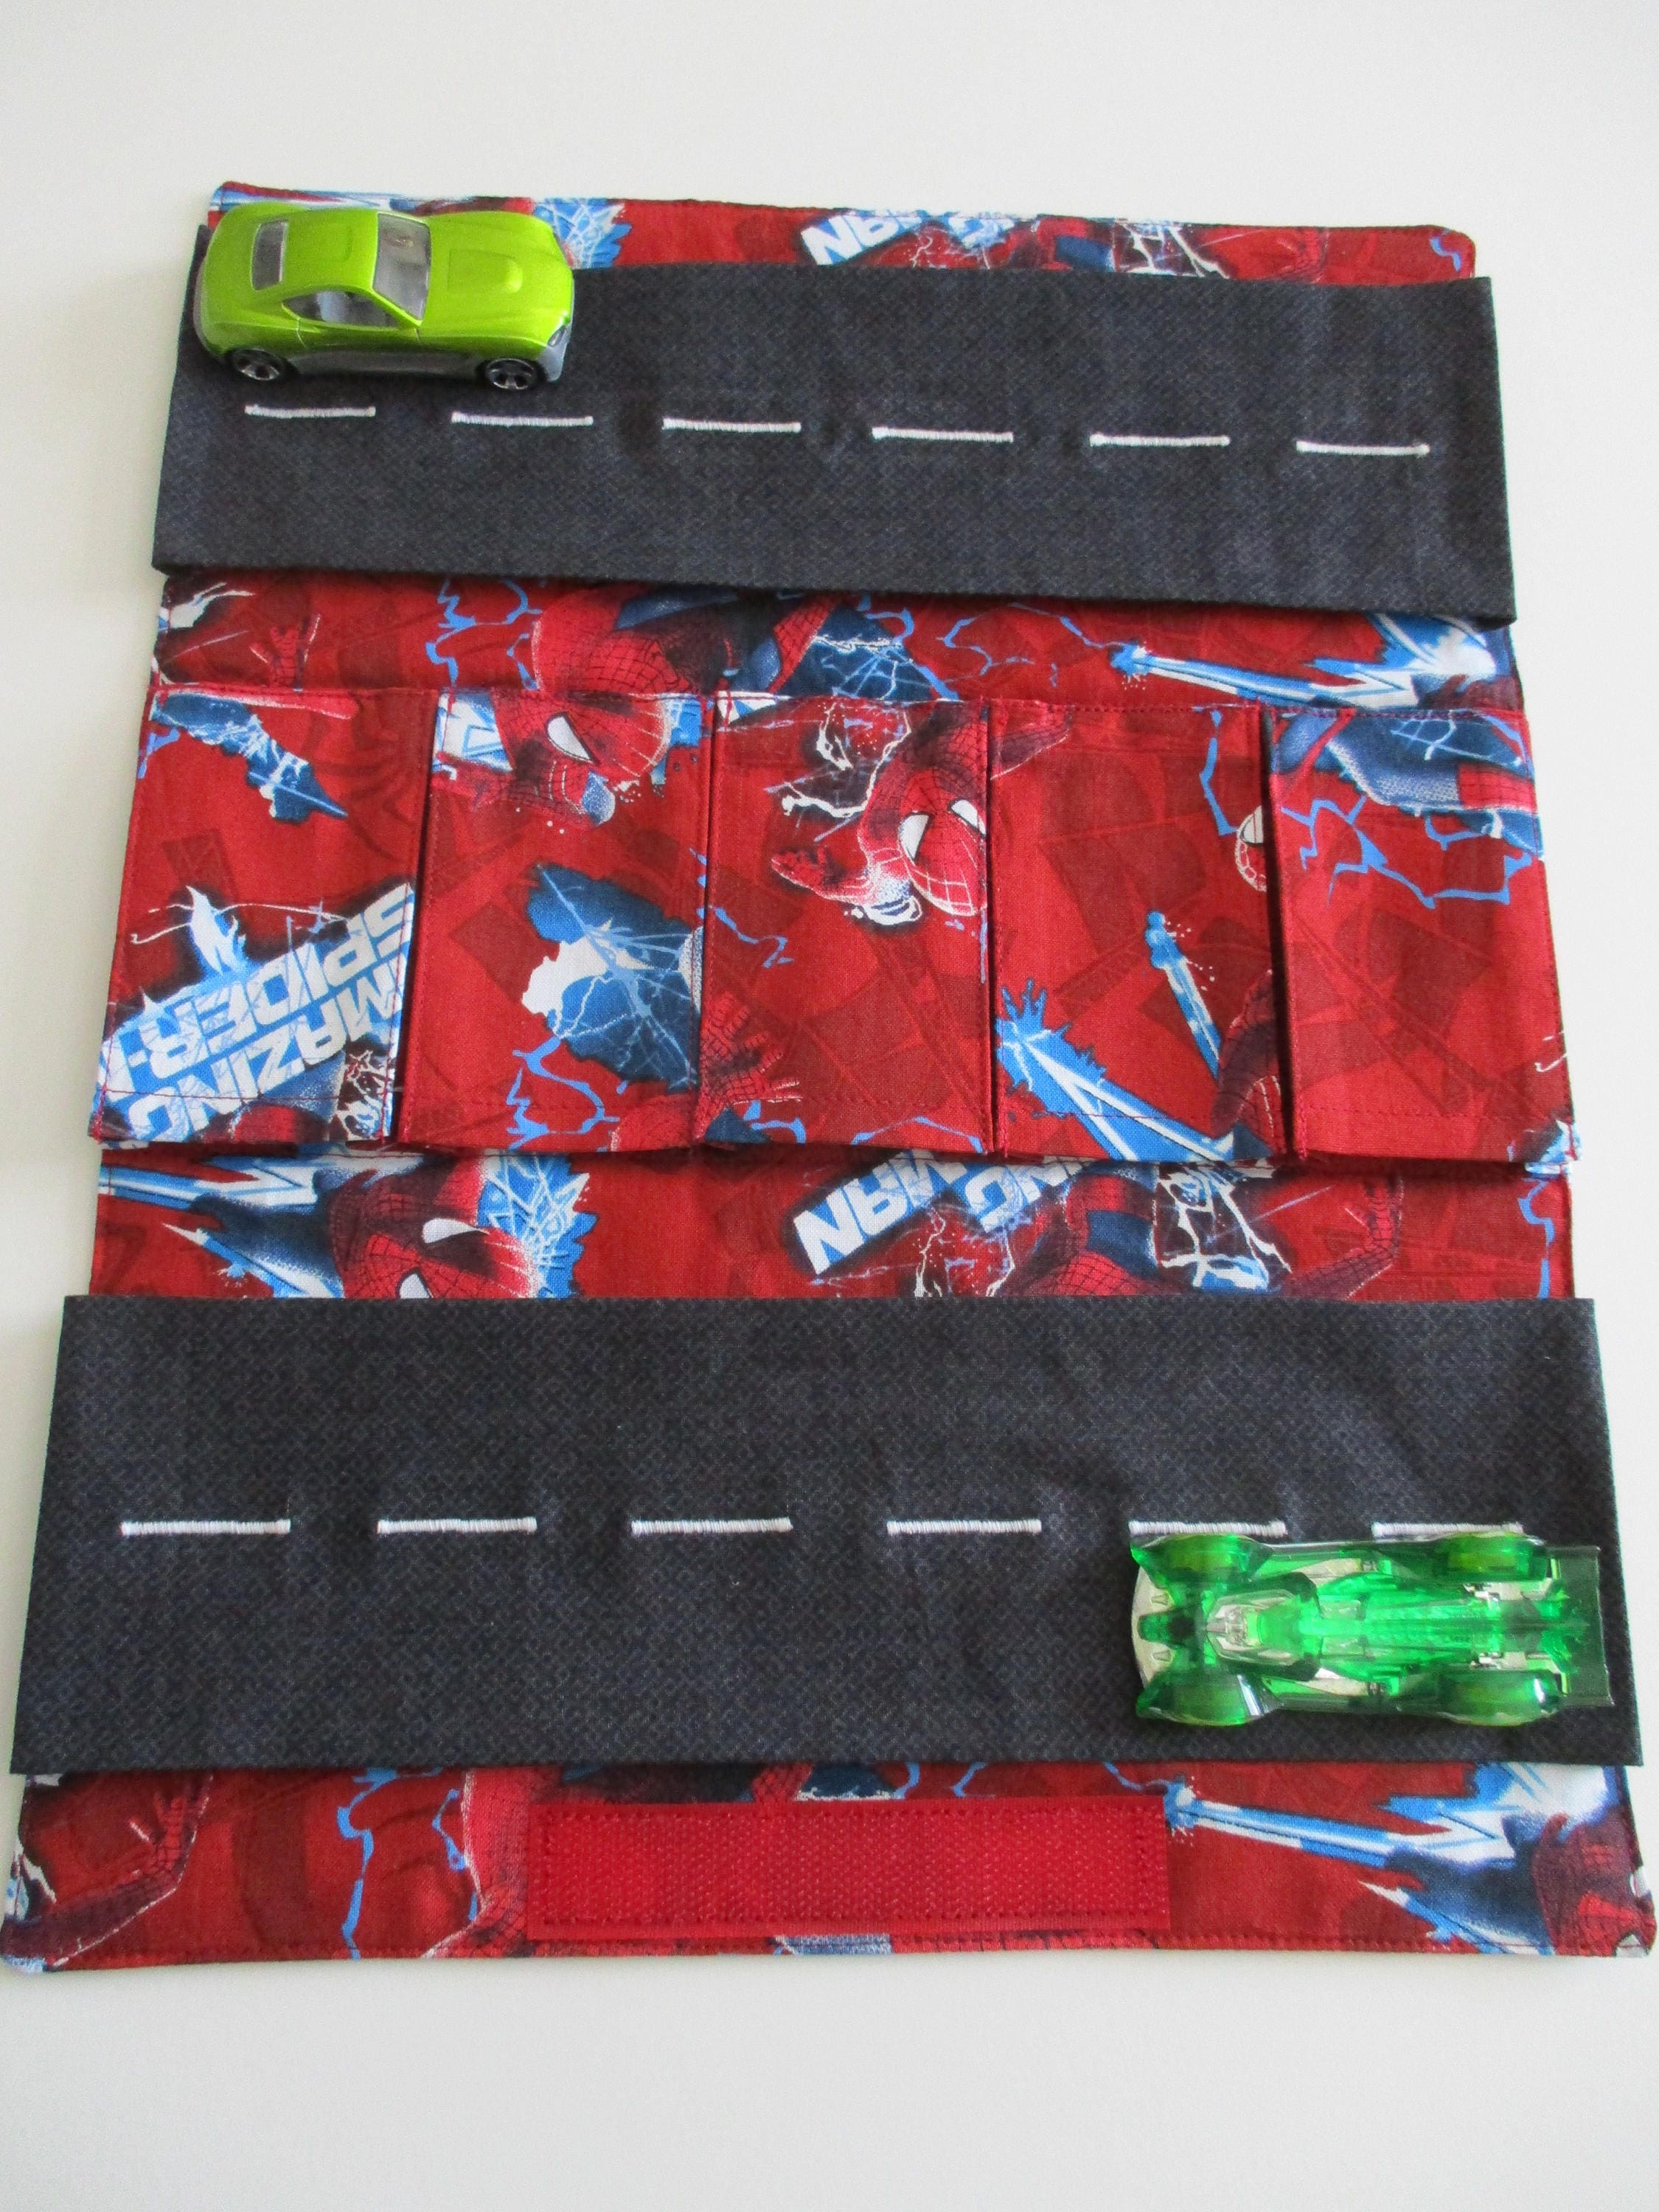 Fabric Roads For Toy Cars : Toy car carrier with road